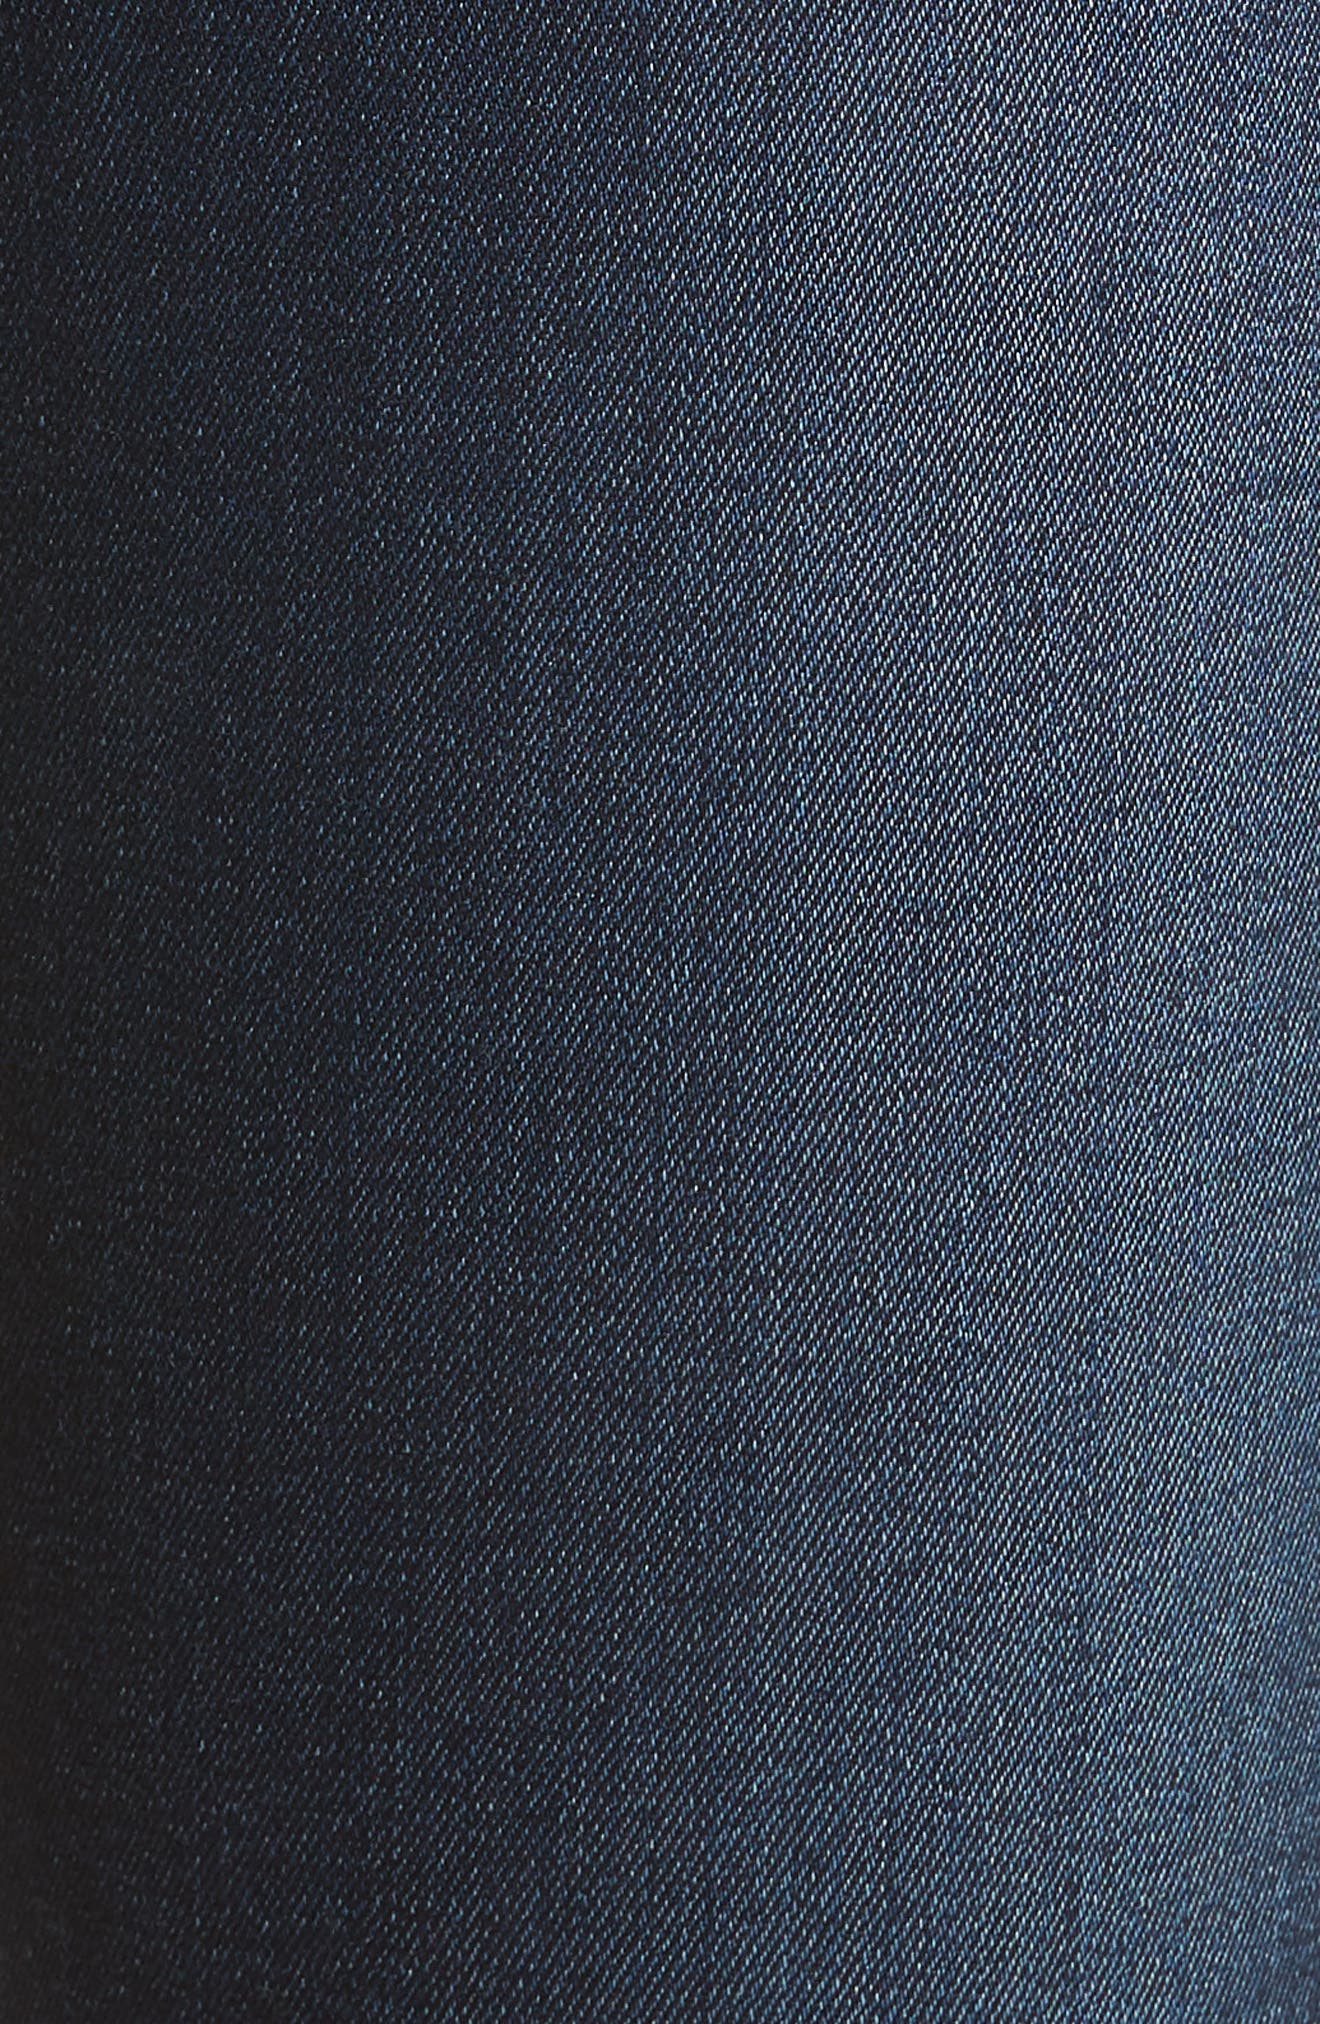 'Nico' Ankle Skinny Jeans,                             Alternate thumbnail 6, color,                             Corps